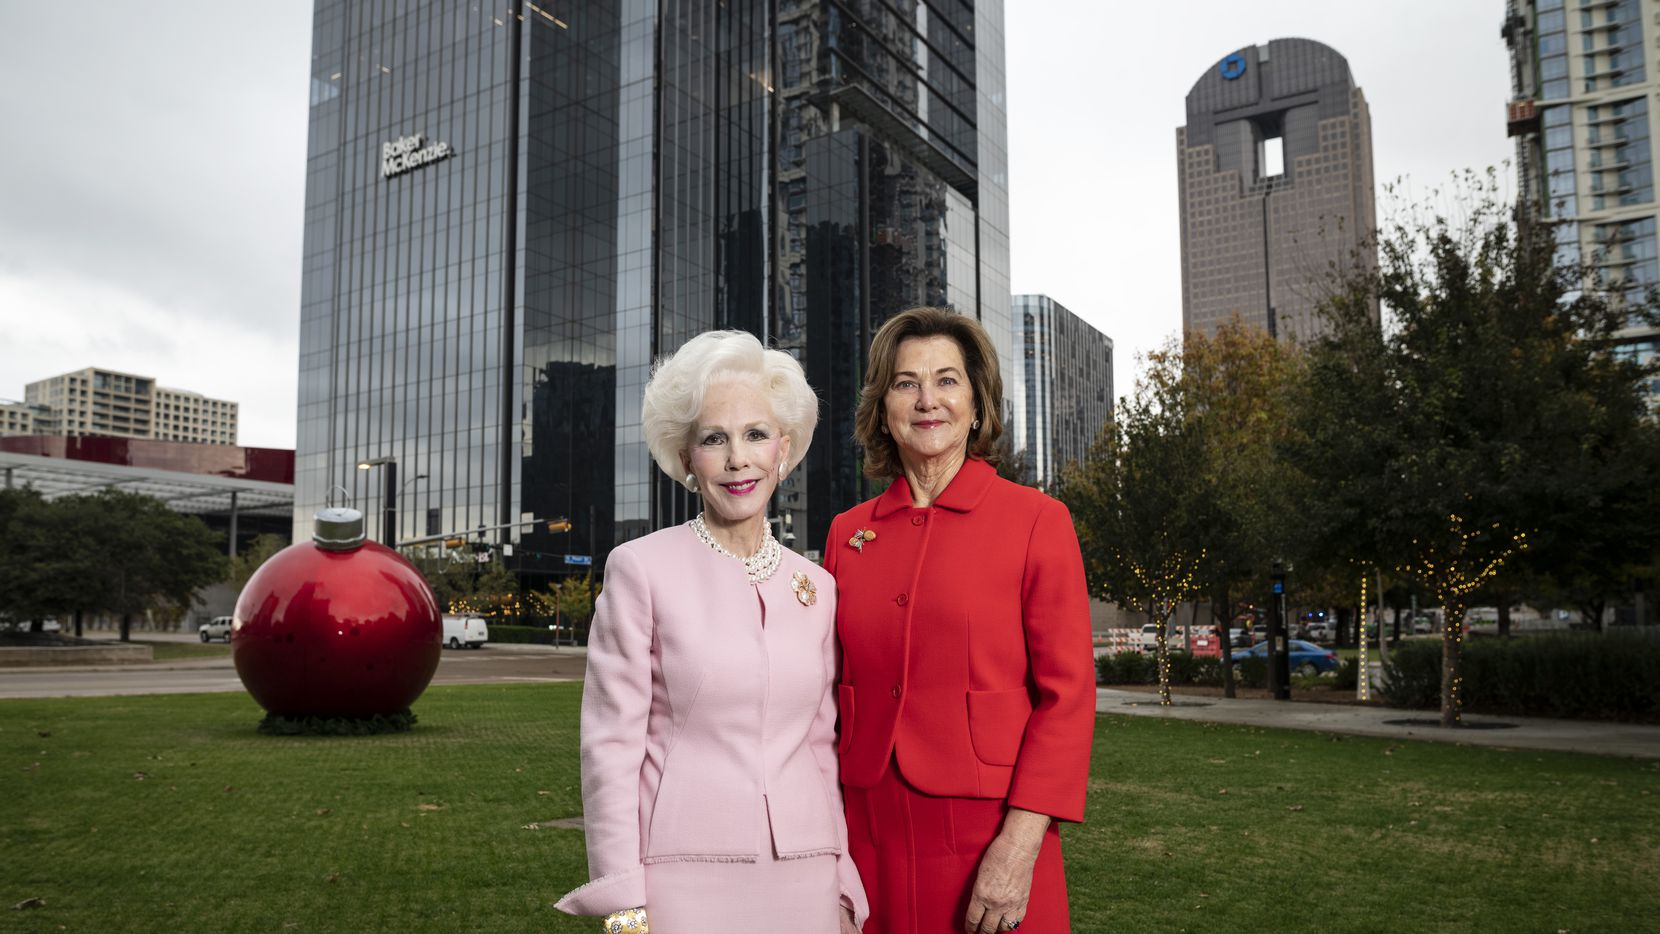 Sheila Grant, left, co-founder of the Klyde Warren Park board, and Nancy Best, fountain donor, stand where a new $10 million interactive fountain will be built at Klyde Warren Park in Dallas, on Dec. 2, 2020.